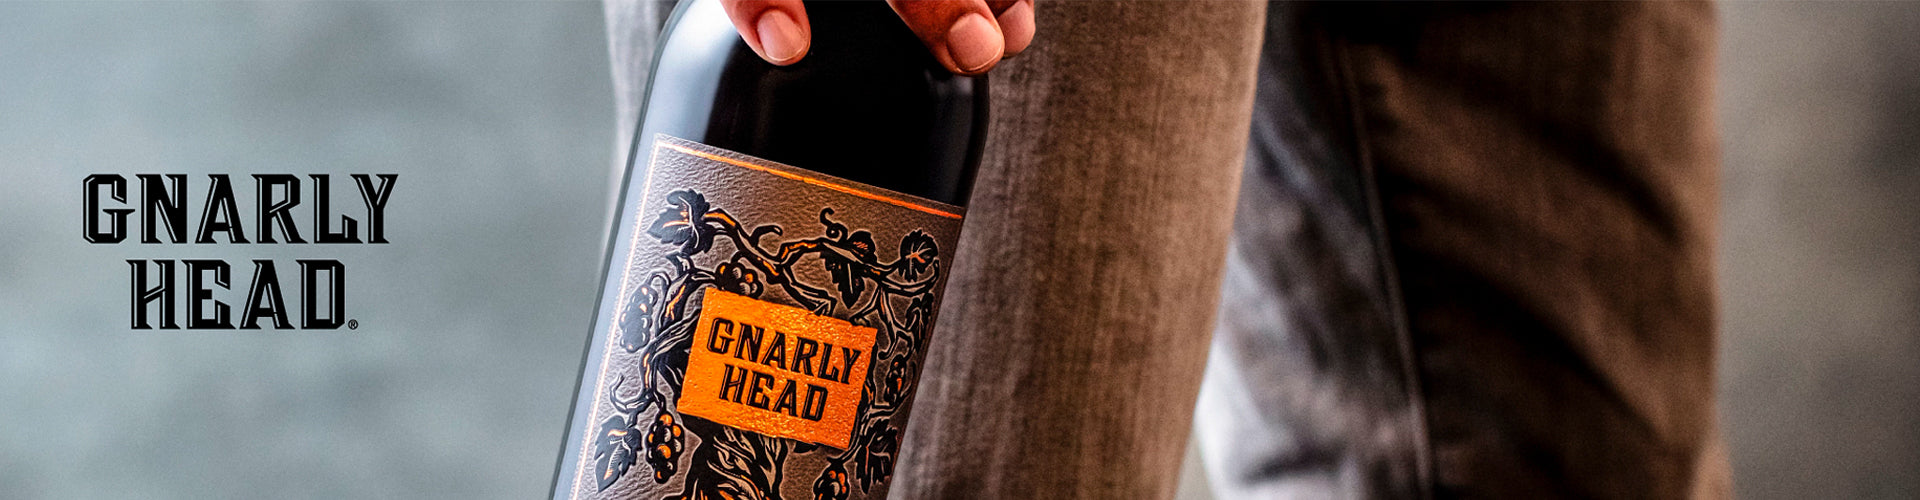 Gnarly Head Collection Image